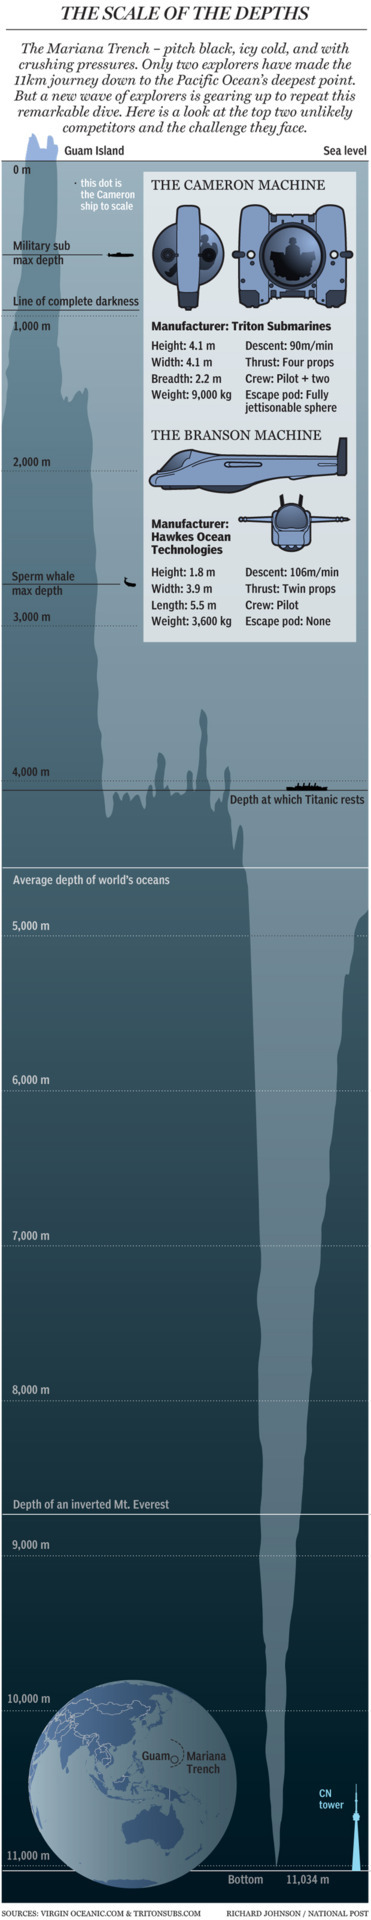 Graphic: Voyage to the bottom of the Mariana TrenchAt a depth of 11,034 metres, the Mariana Trench is the lowest point on the surface of the Earth's crust. And it's become the focus of an inner-space race between filmmaker James Cameron and Sir Richard Branson